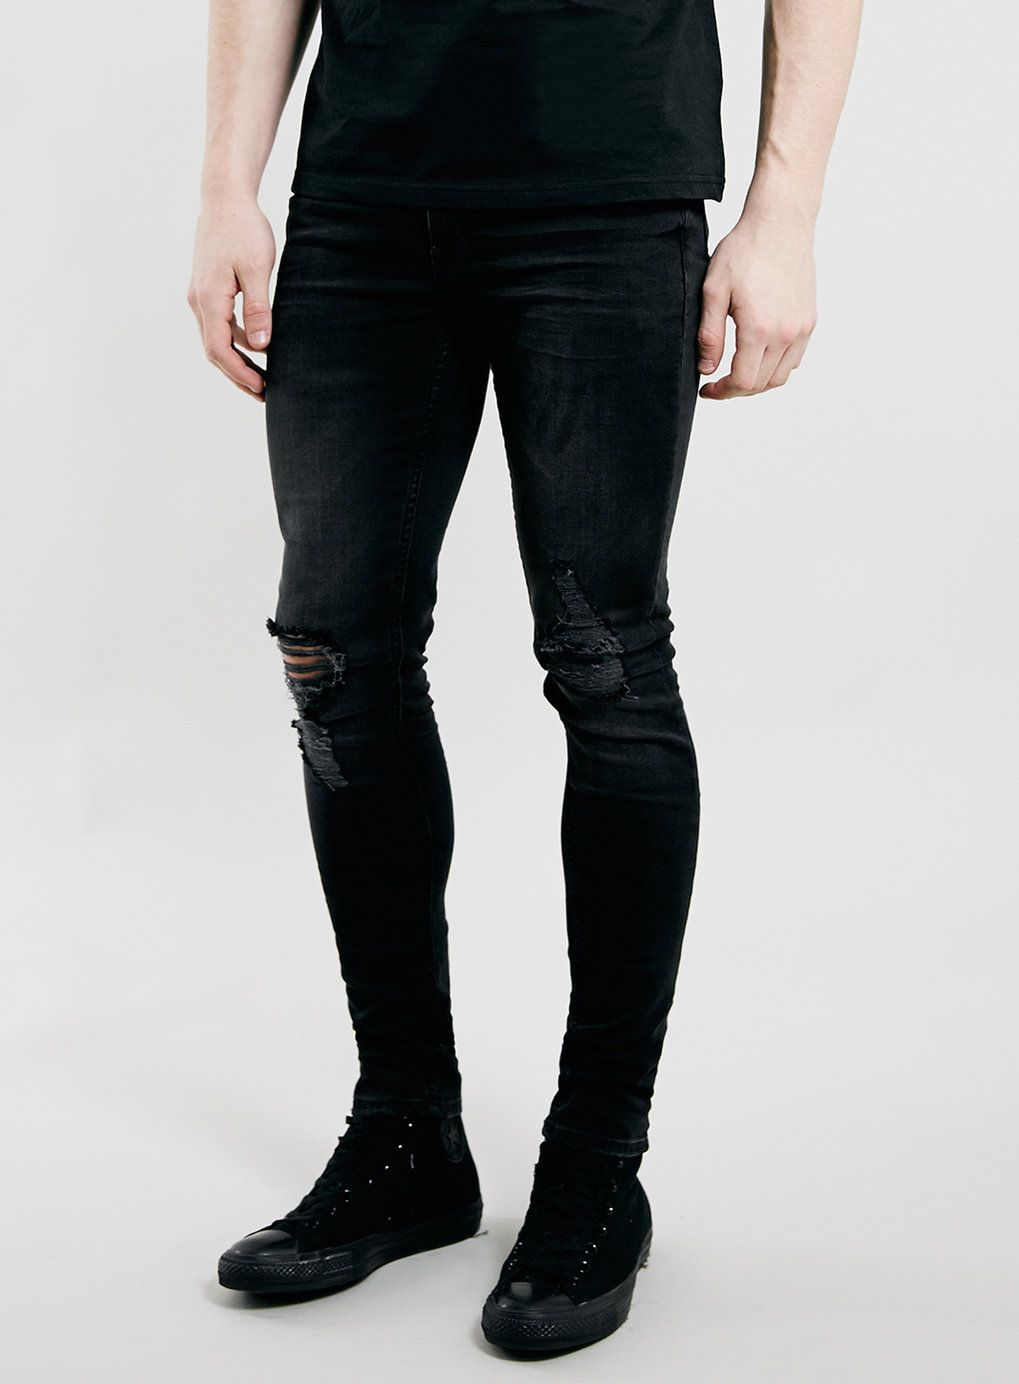 Washed Black Ripped Spray On Skinny Jeans | Black knees, Skinny ...